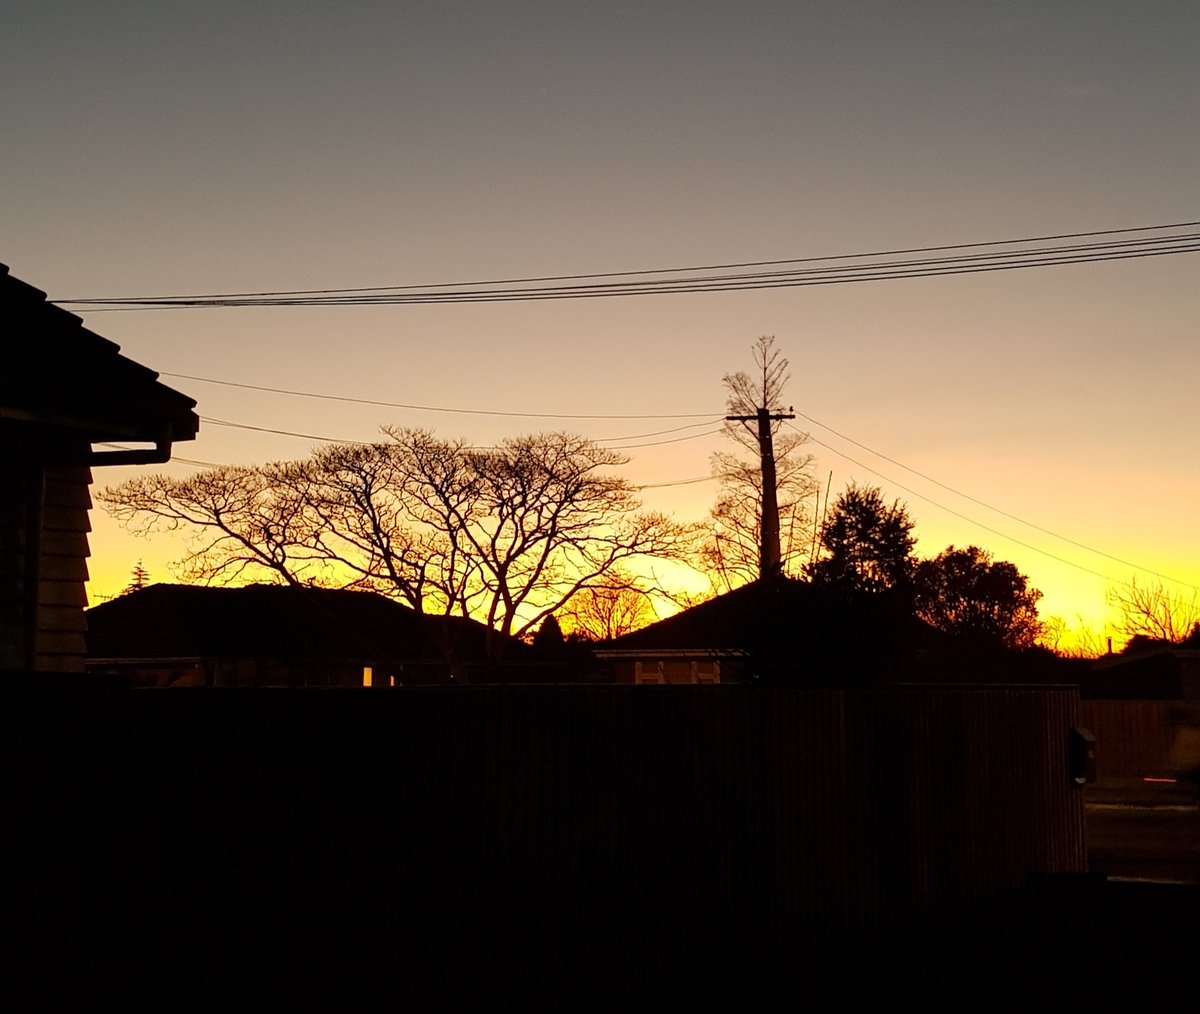 When you try to make your sunrise photo in Christchurch look like the Serengetti by adding a tree. Cracker of a sunrise